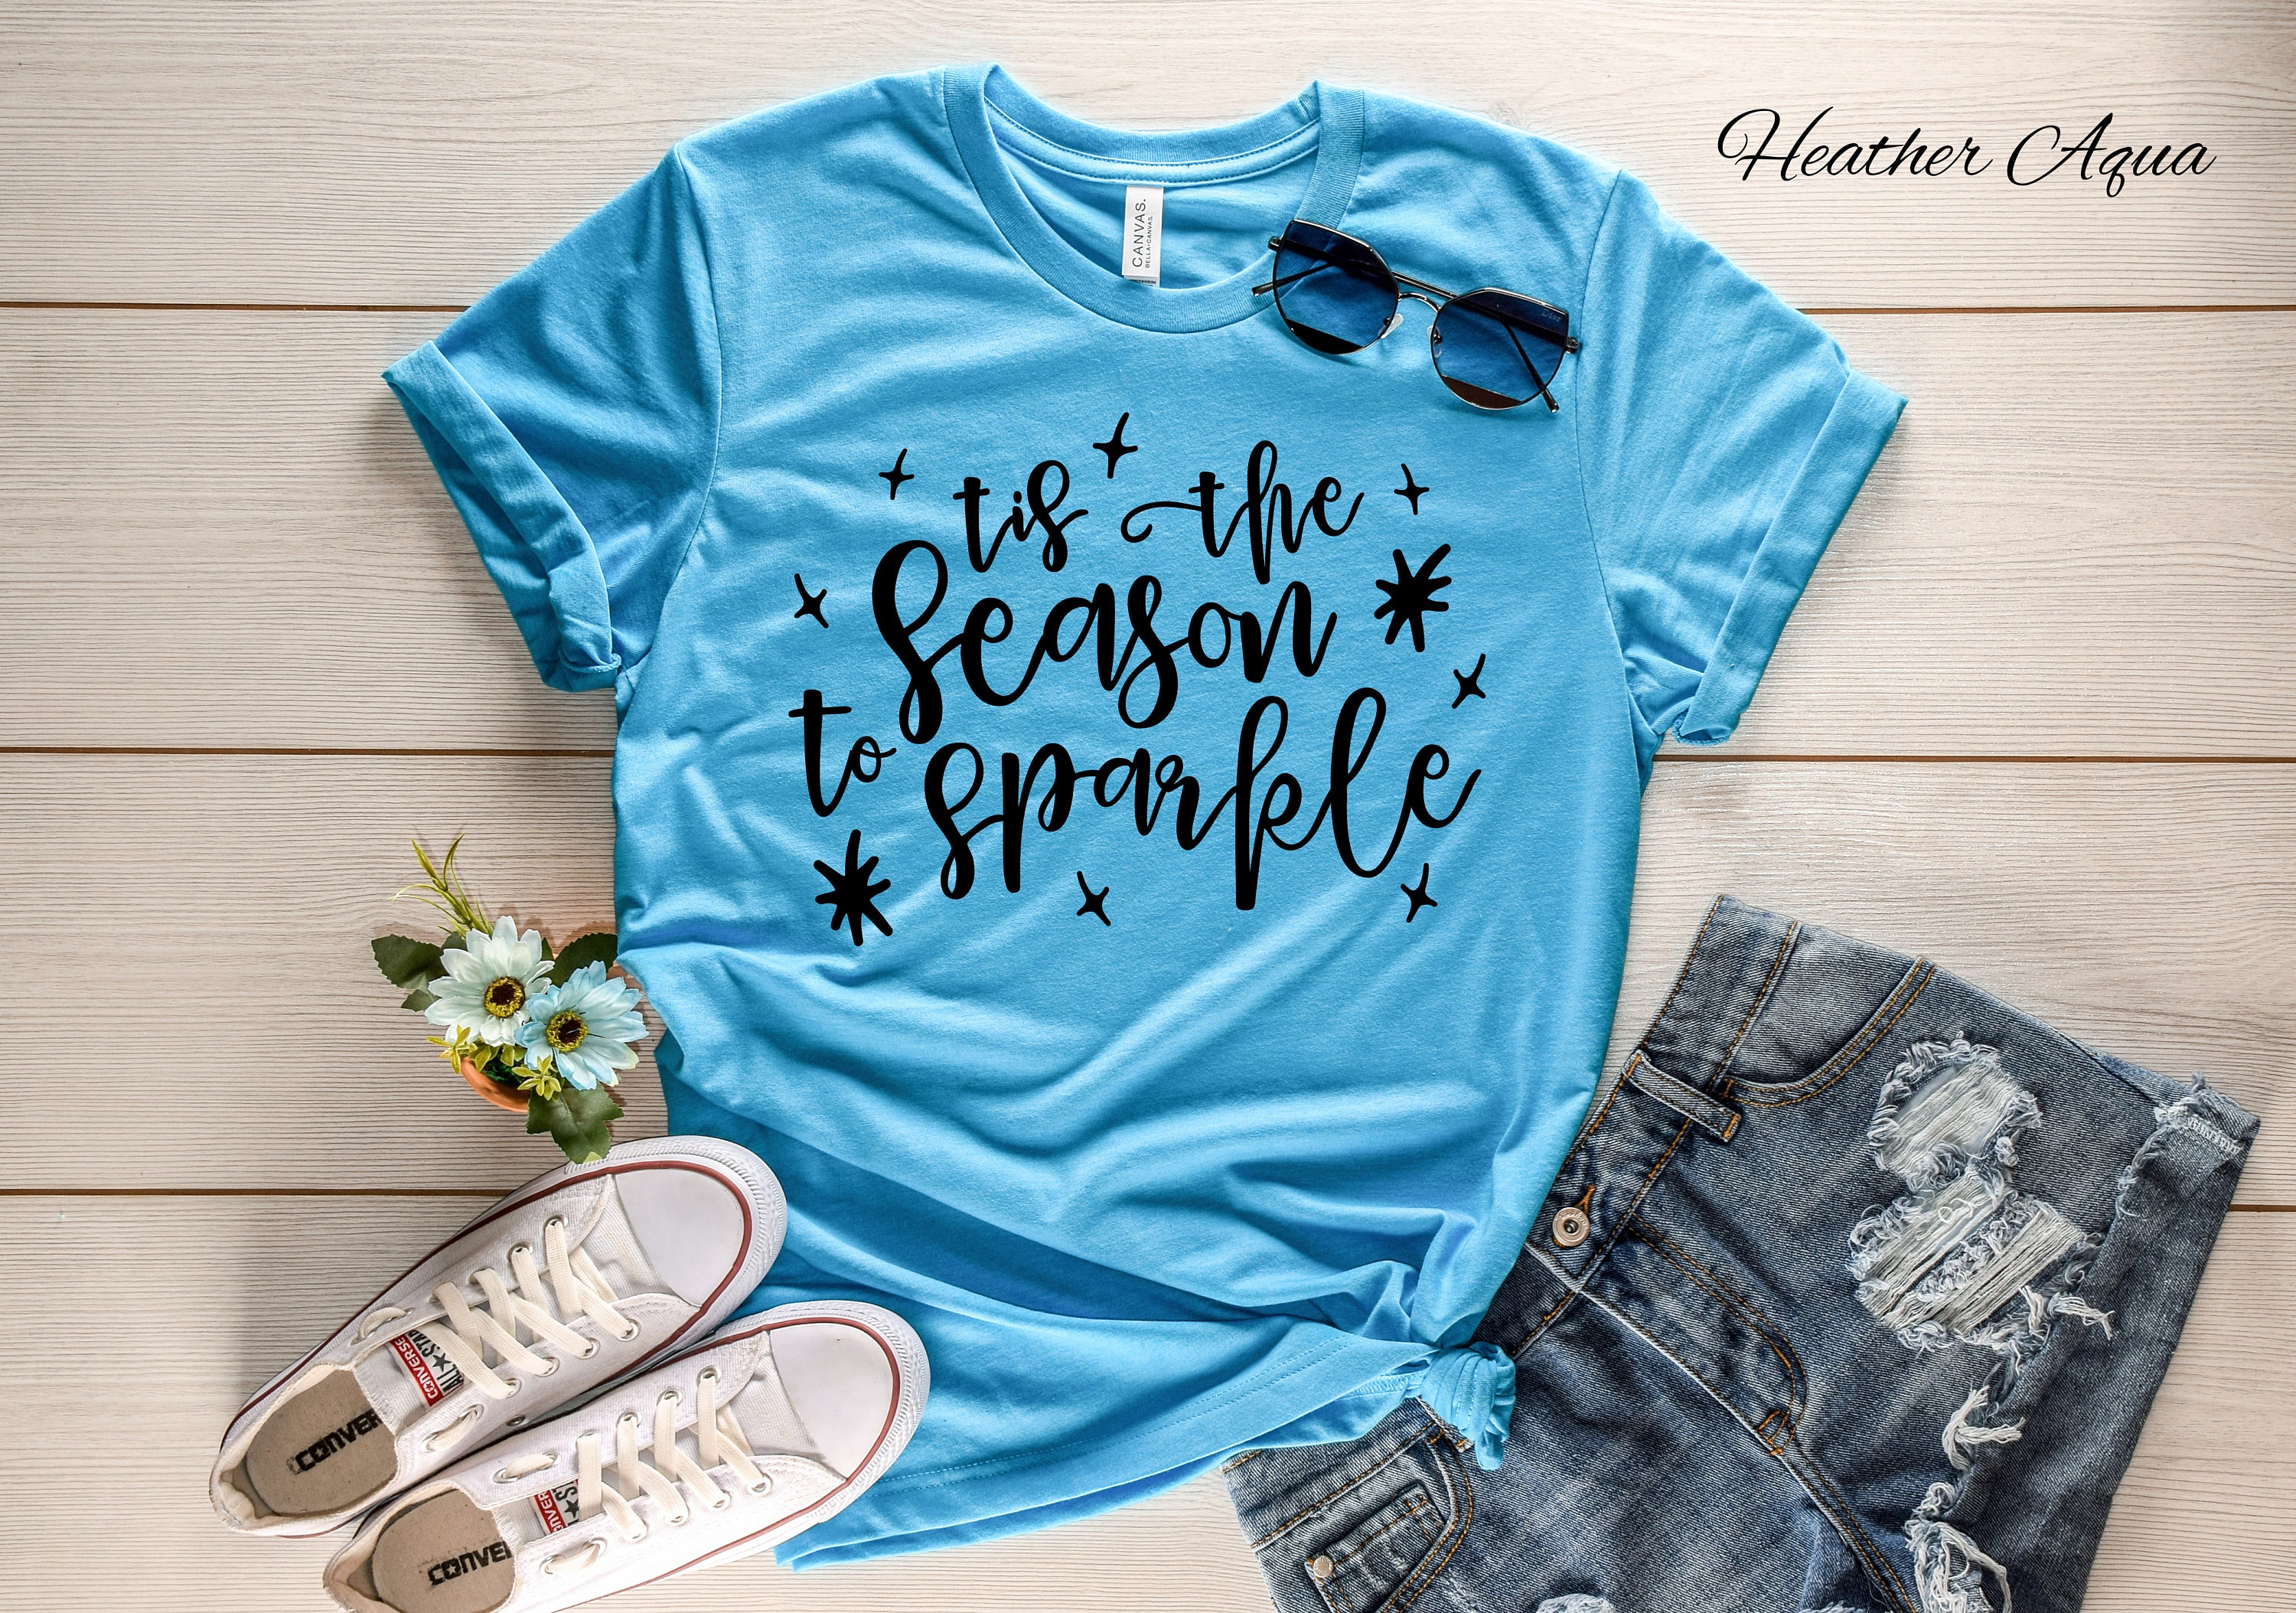 6c357bc096a2 Tis the Season to Sparkle Crew Neck Tshirt | Christmas Shirt | Holiday  Tshirt | Casual Wear | Winter Shirt | Holiday Wear | Graphic